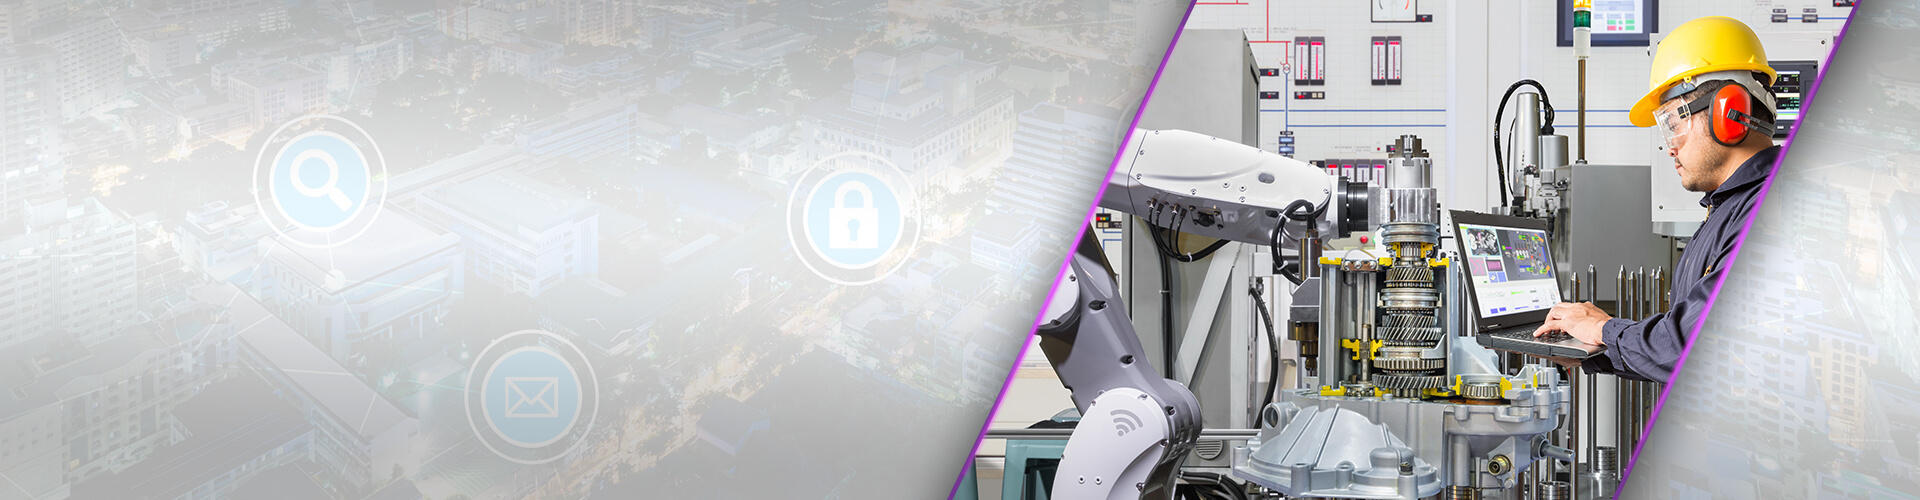 VOLANSYS-Industrial-IoT-hero-banner-white-update